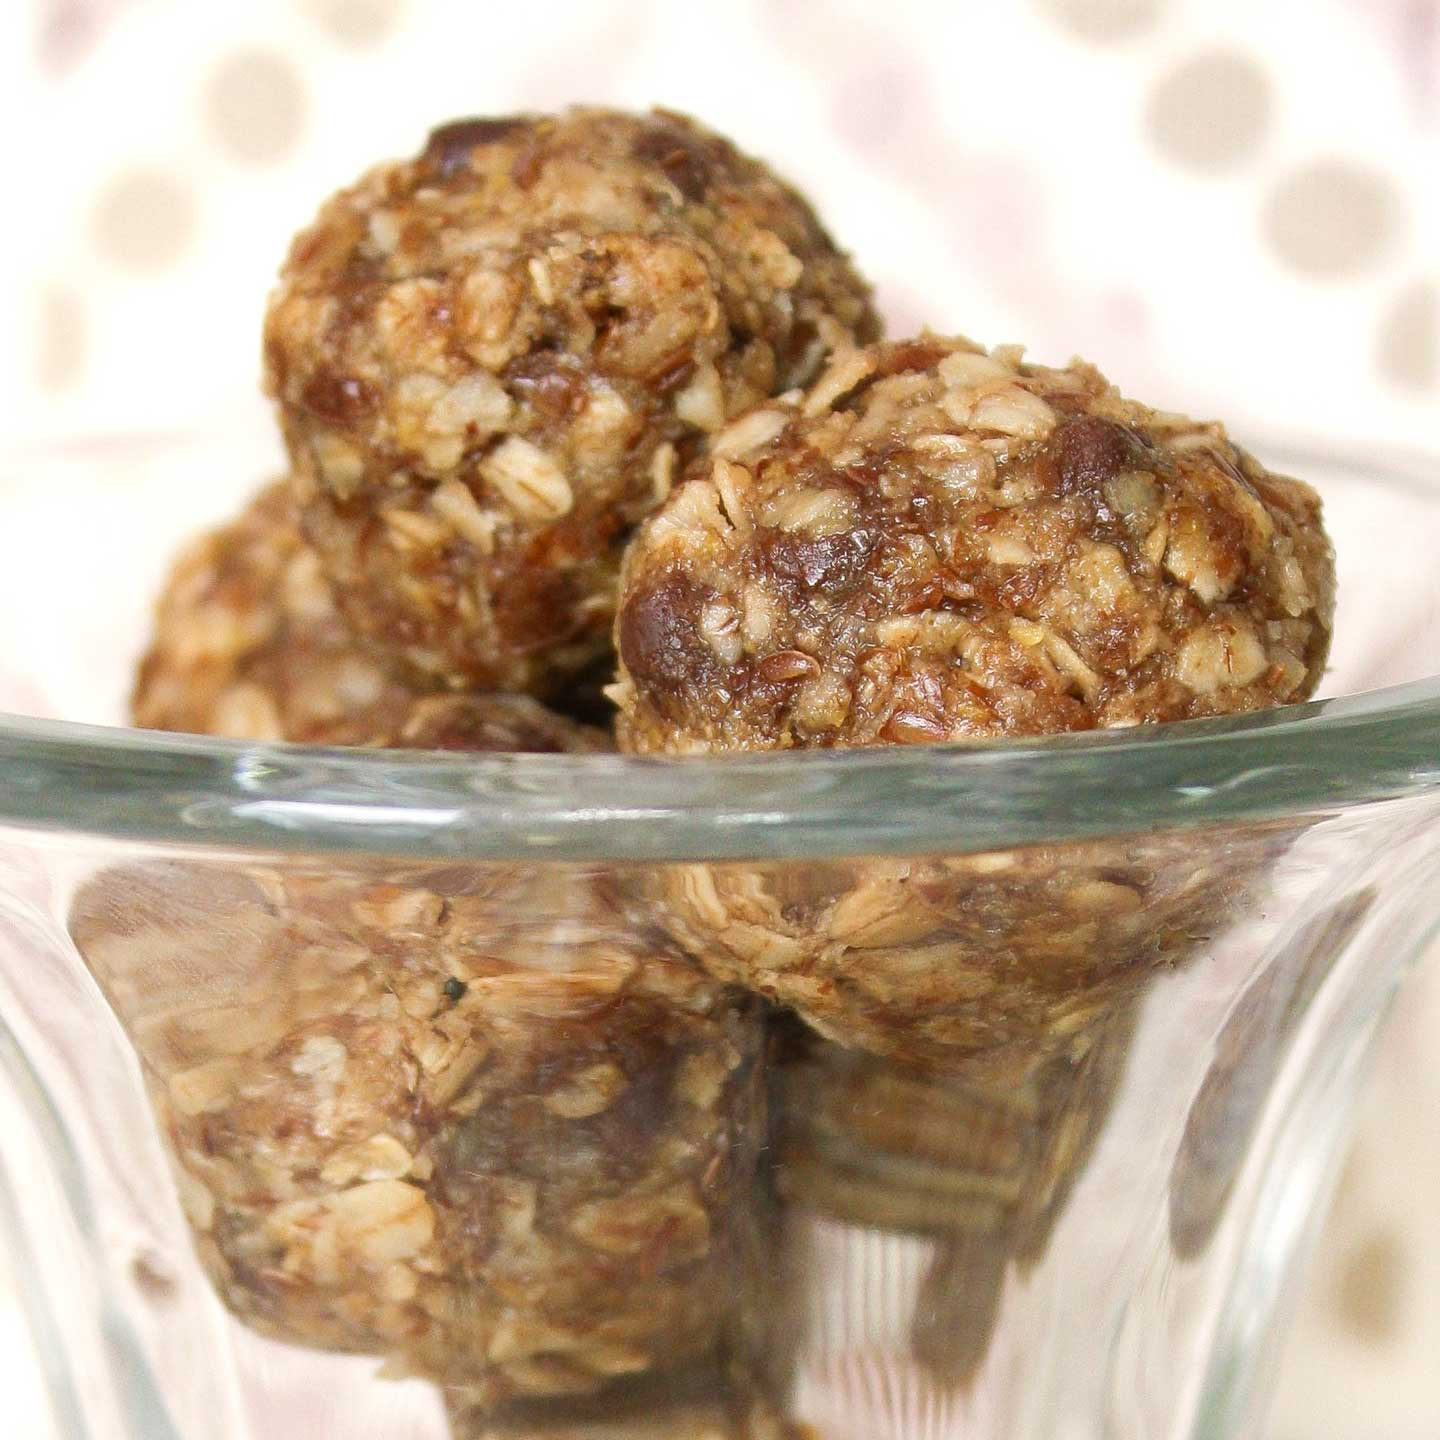 Several energy balls stacked in a tall, clear glass parfait cup.